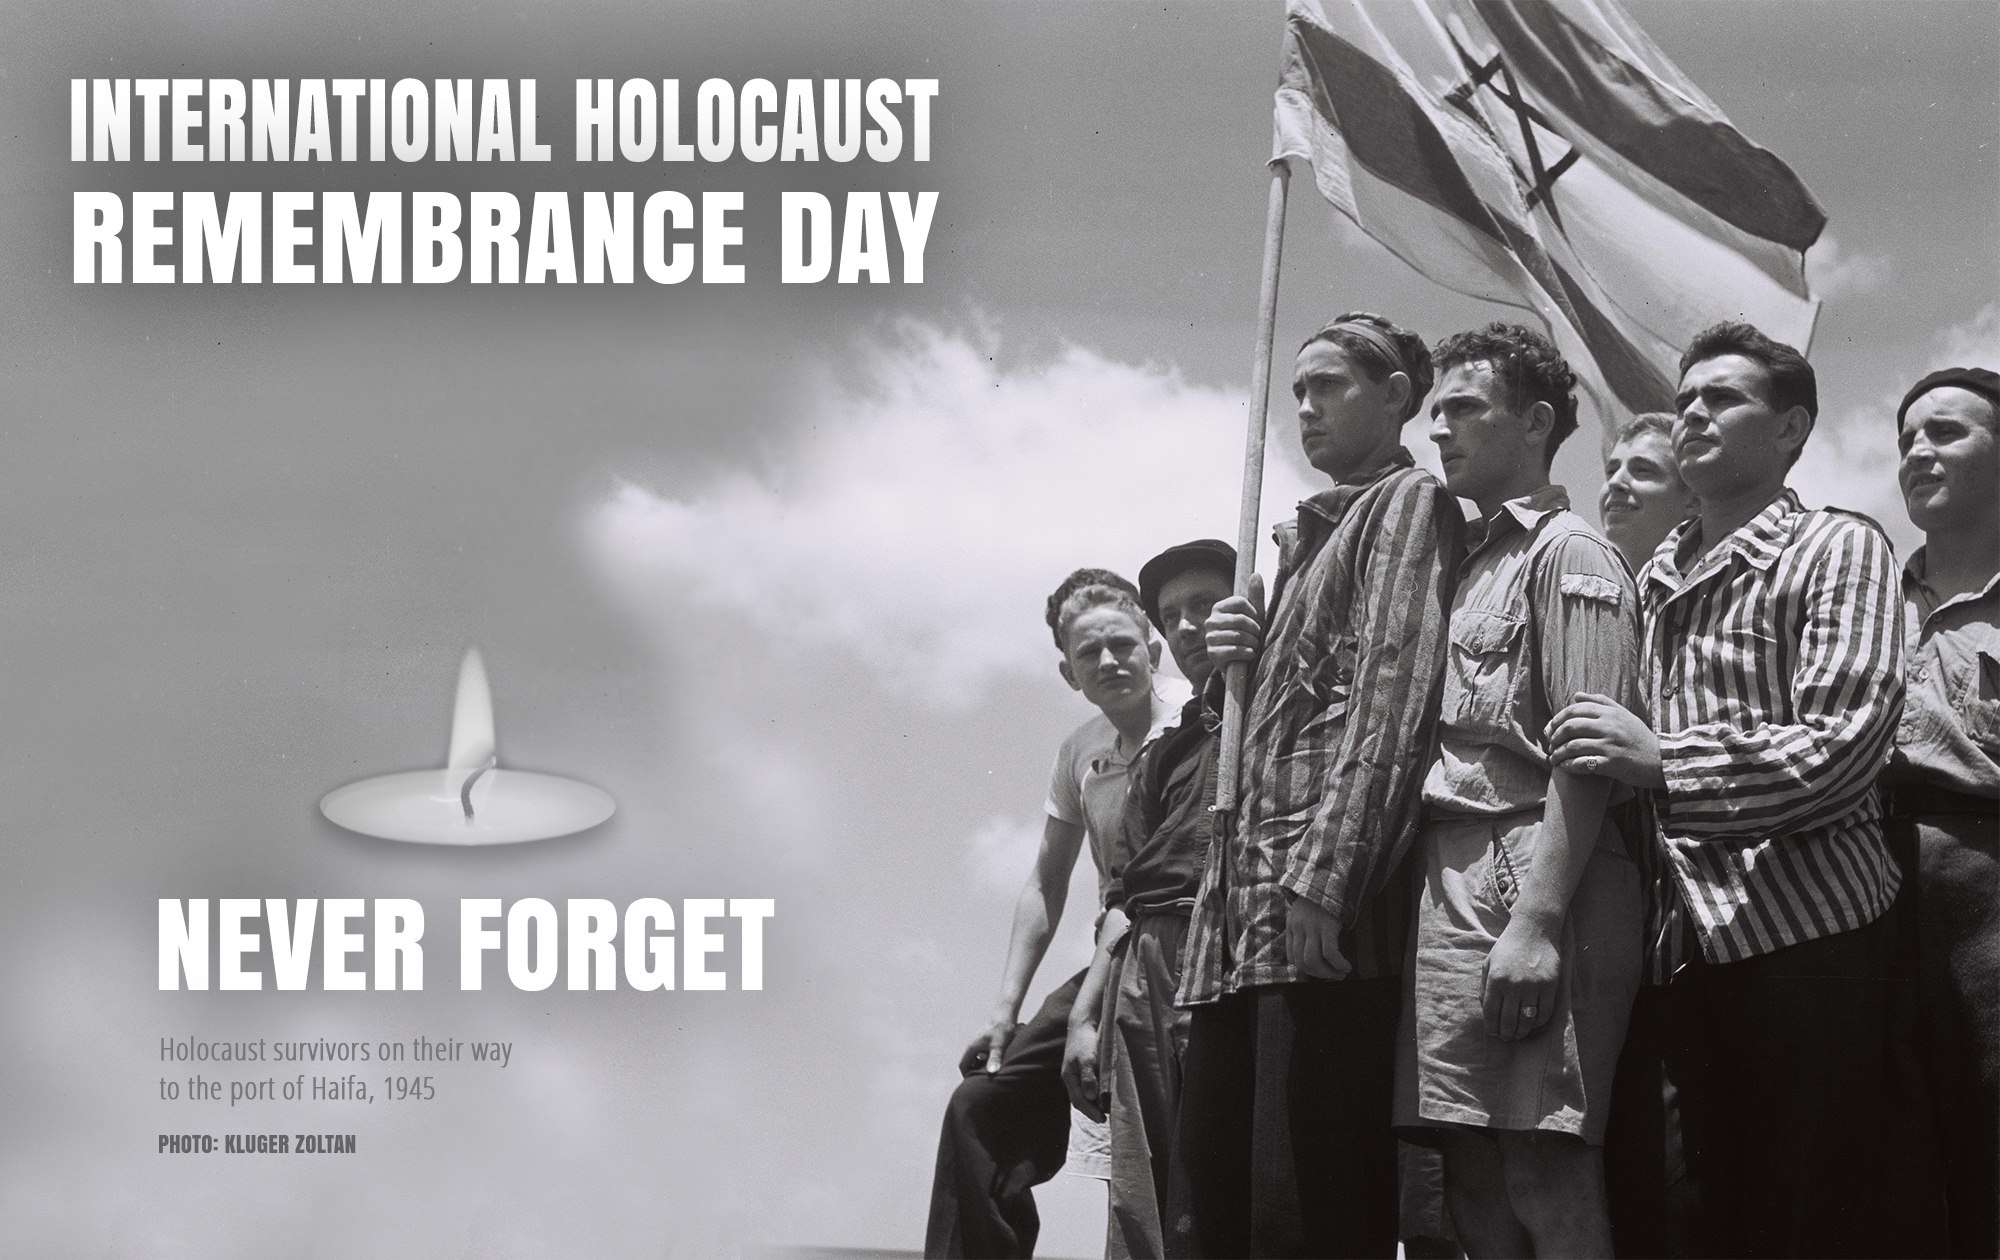 International Holocaust Remembrance Day Wishes Photos